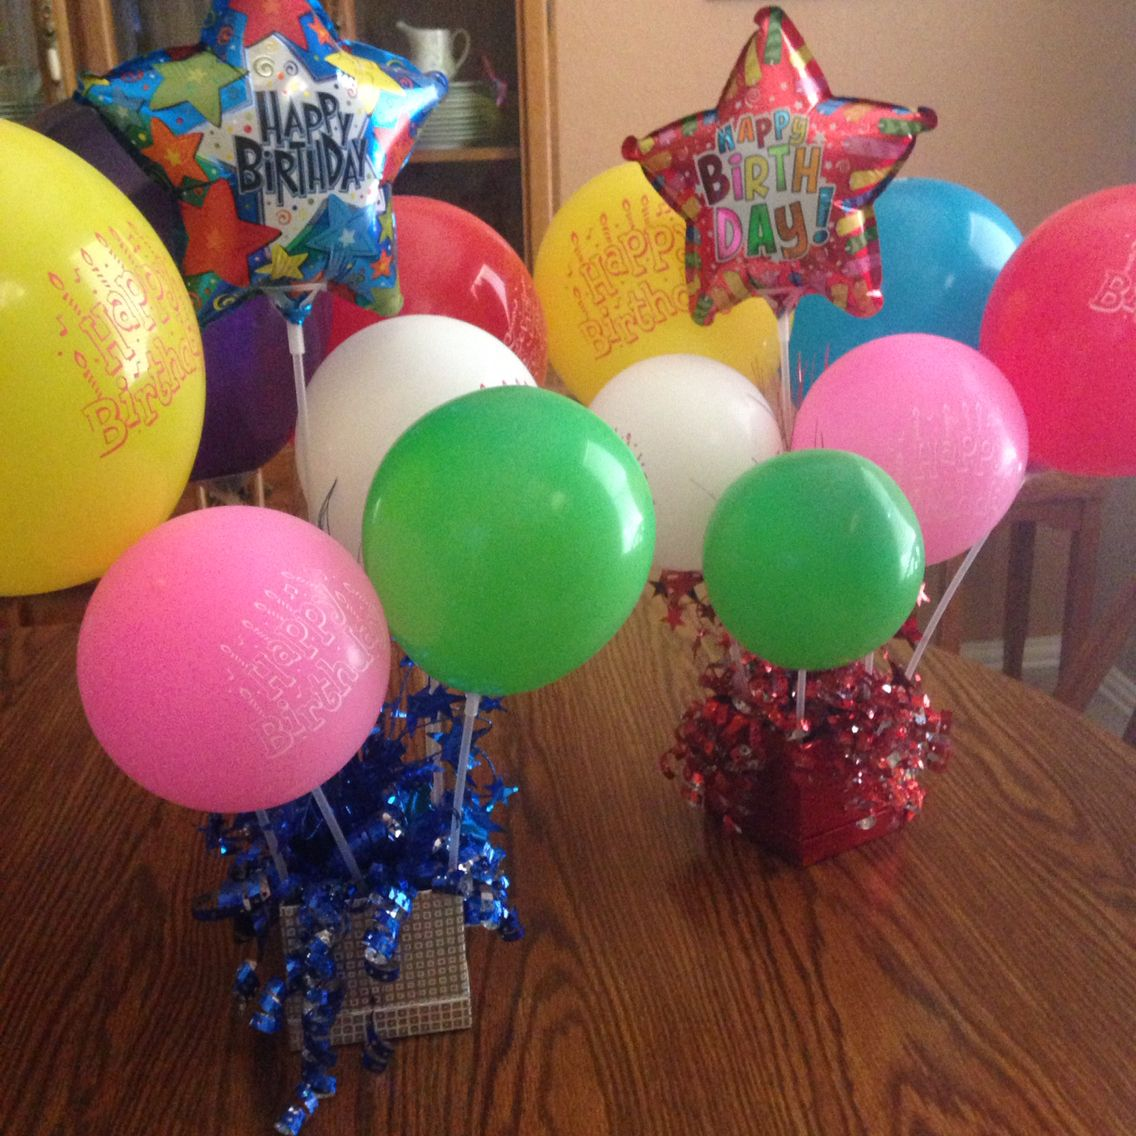 Dollar Tree Birthday Centerpieces Total Cost 10 For Two The Only Thing Not Bridal Shower Decorations Diy Cheap Birthday Decorations Tea Party Bridal Shower